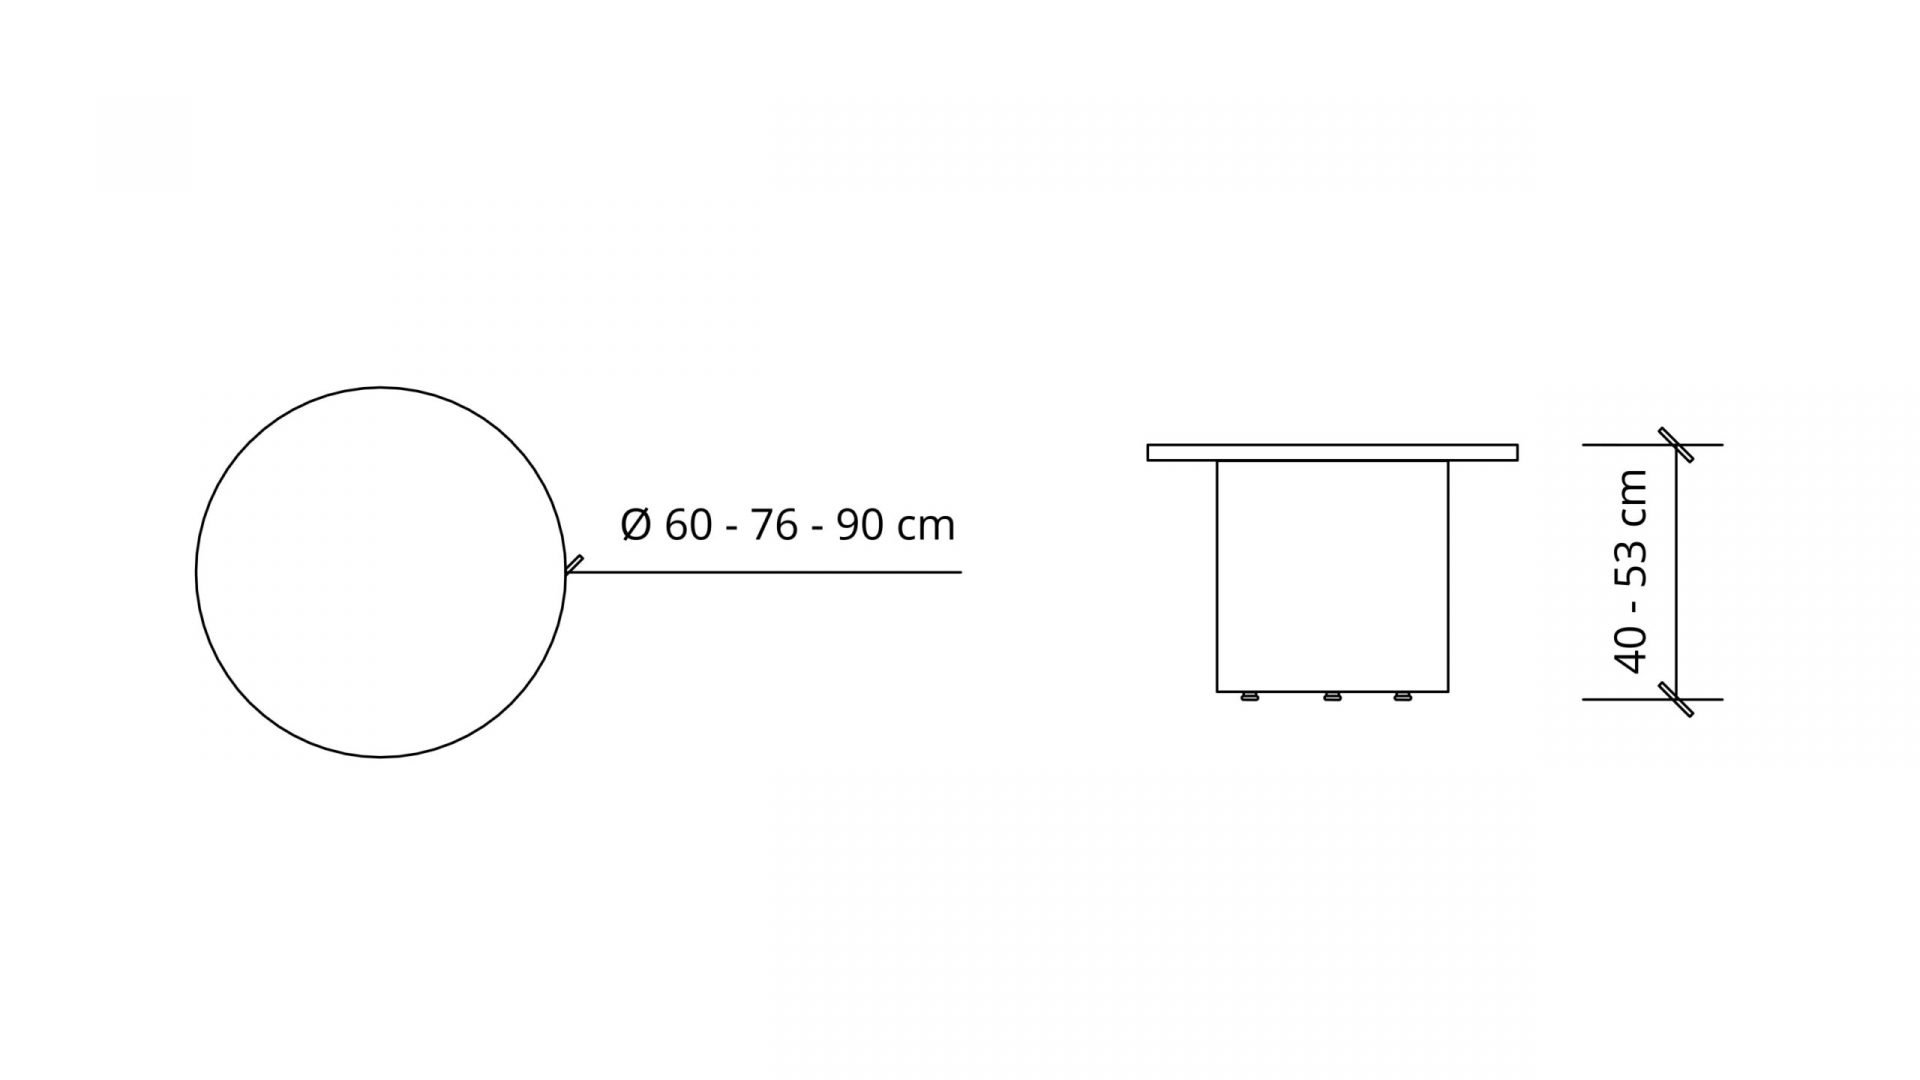 Dimensions of Round Coffee Table 1641